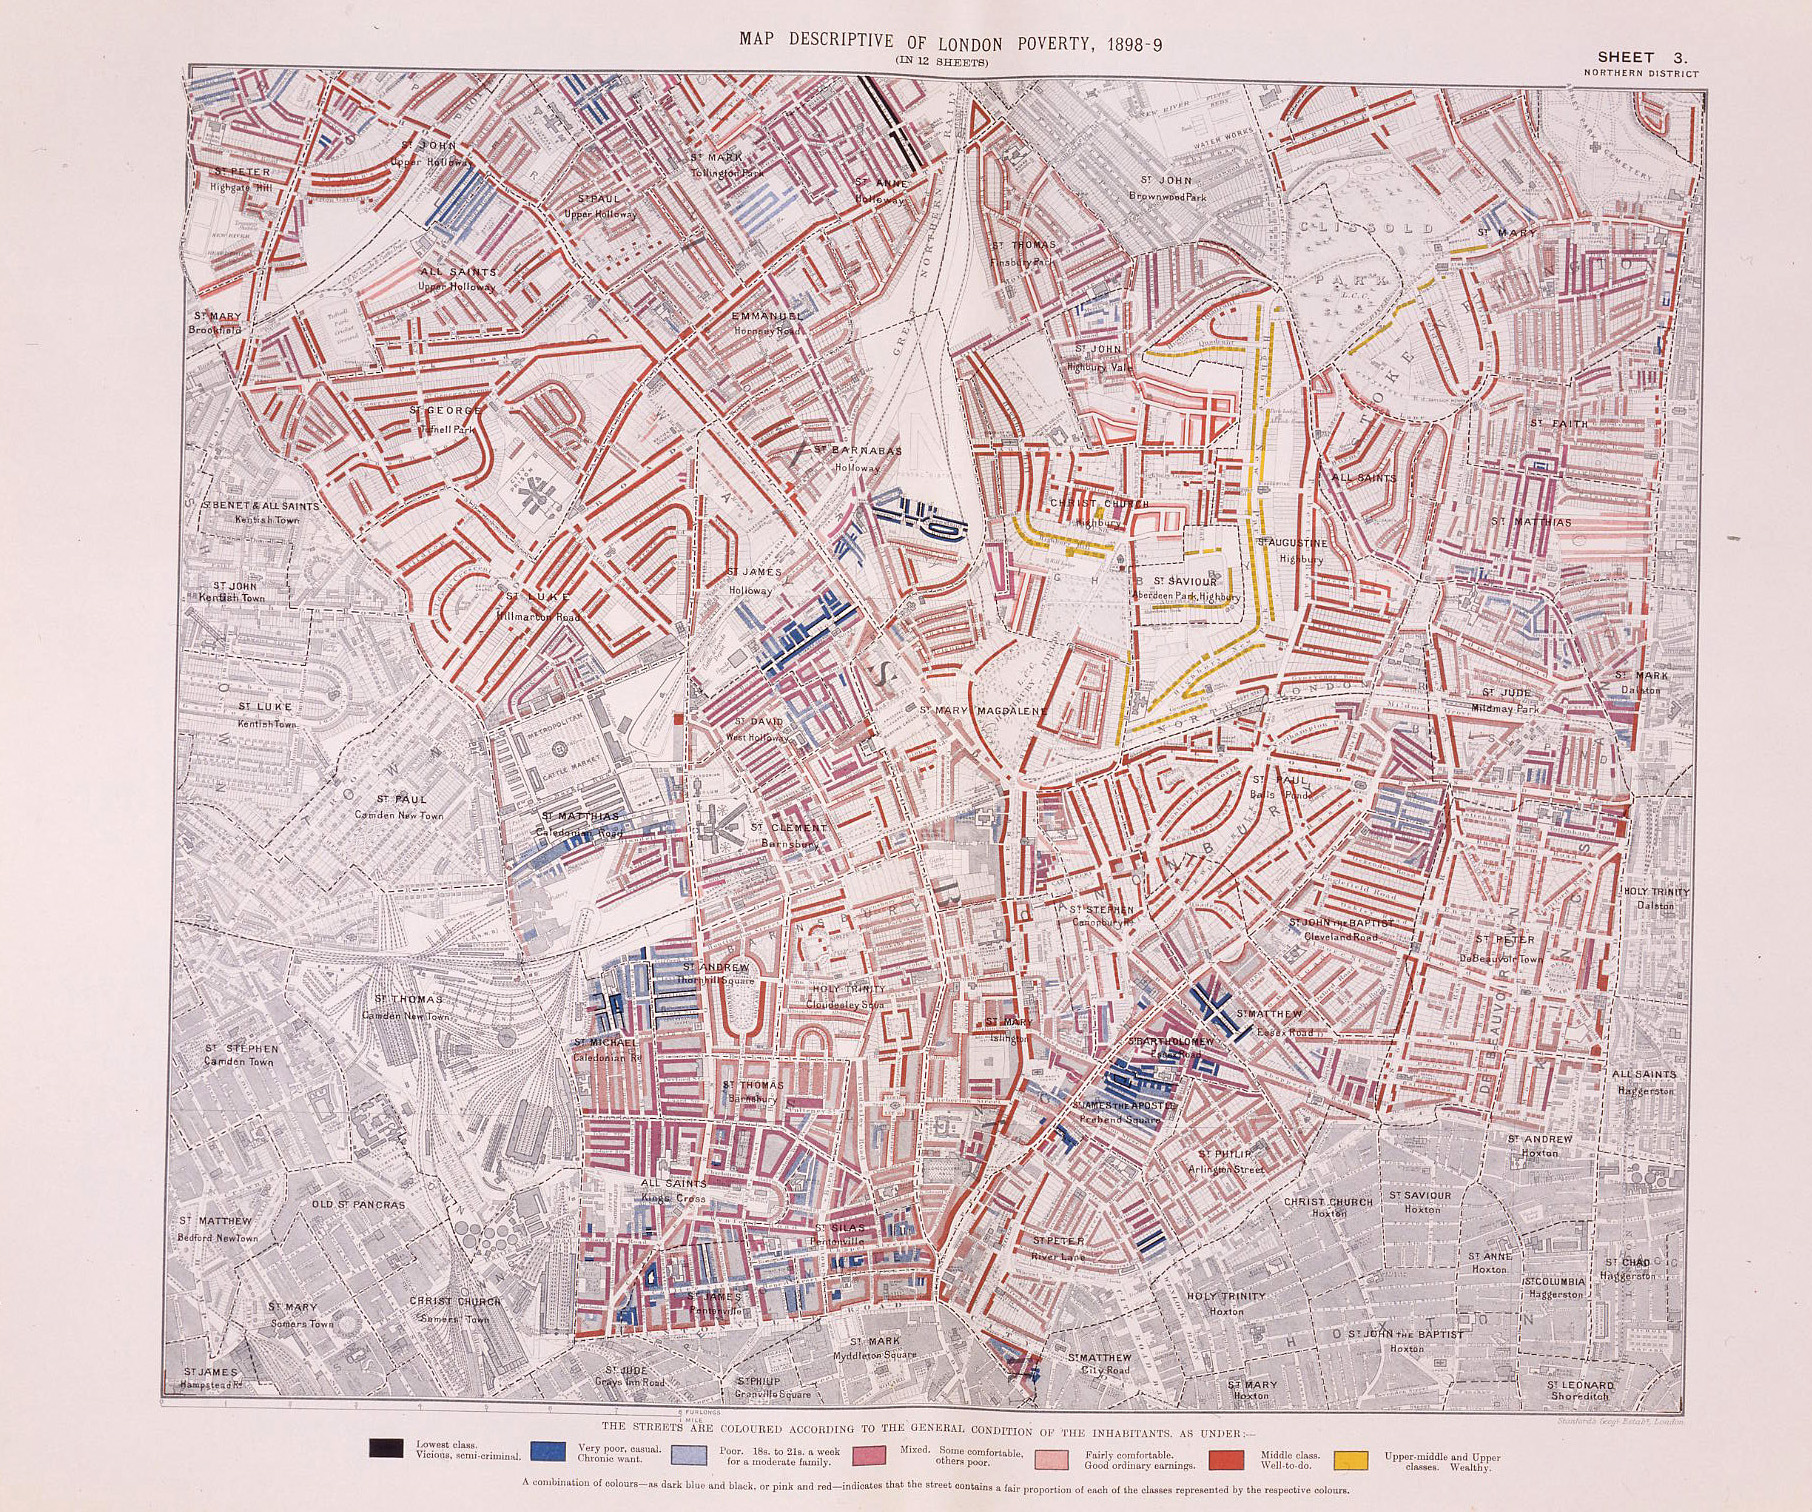 Booth's Poverty Map of London, 1892